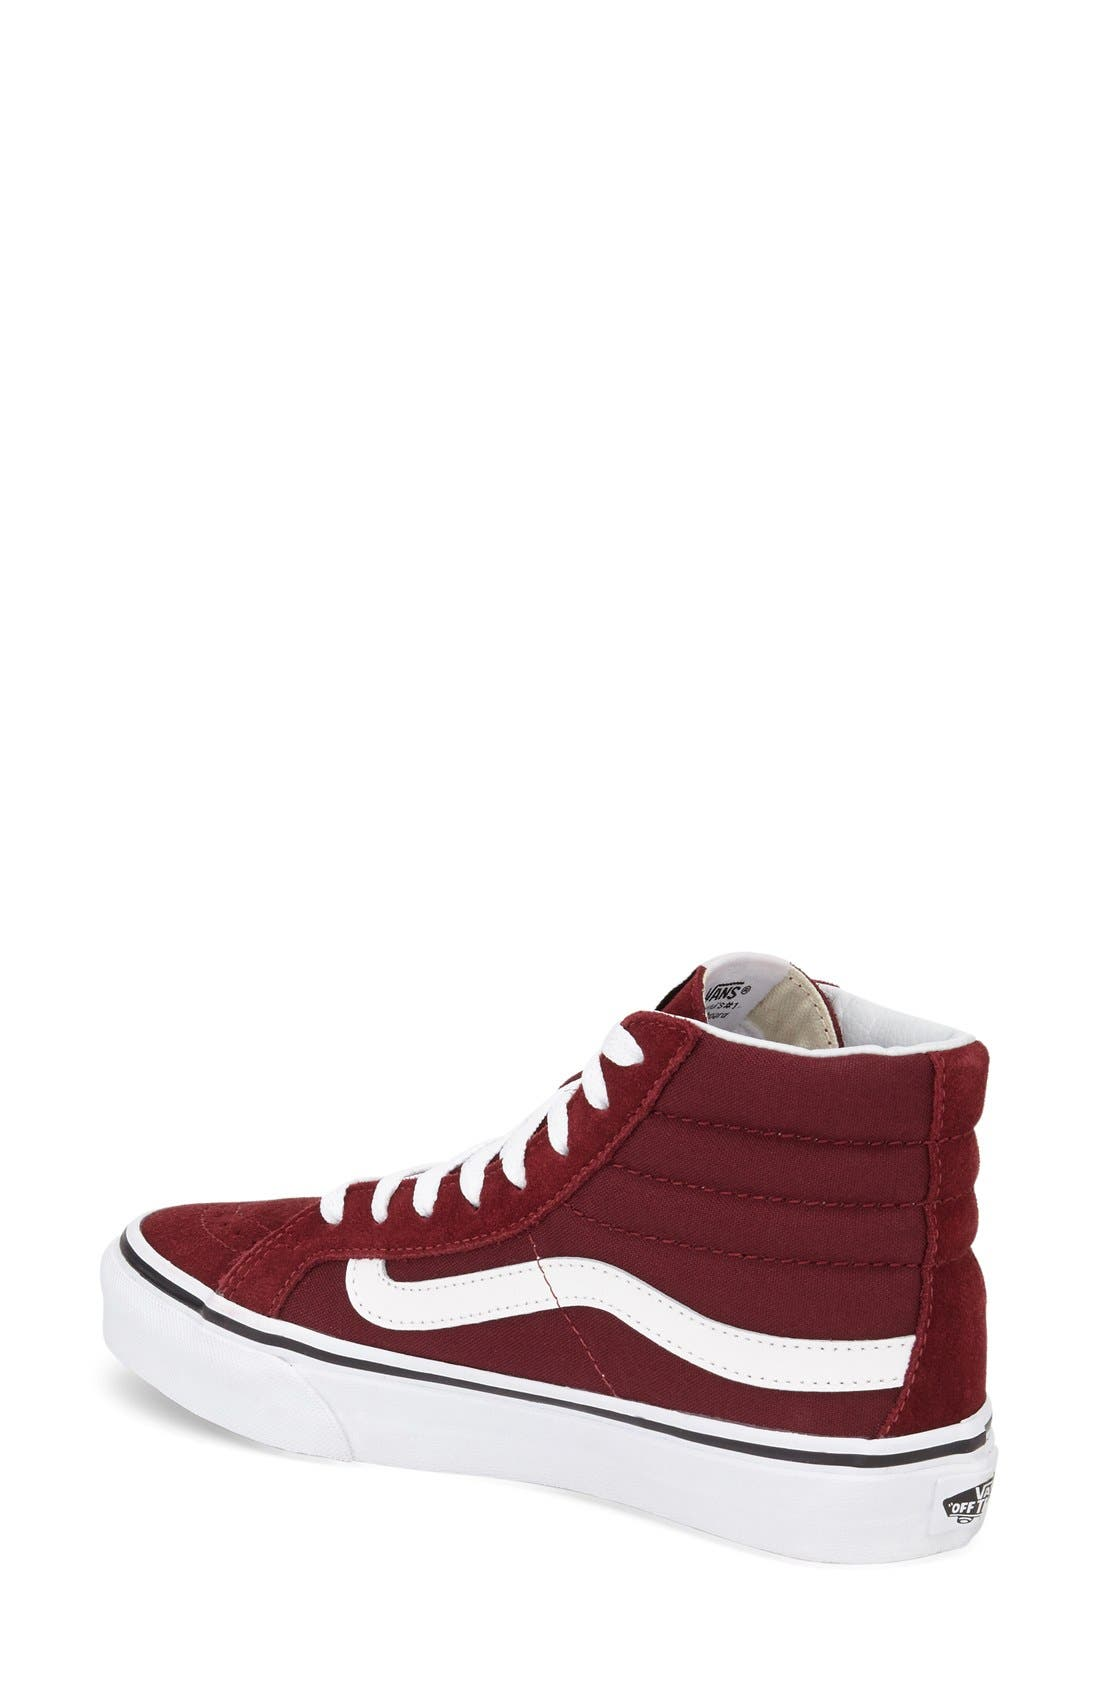 Alternate Image 2  - Vans Sk8-Hi Slim High Top Sneaker (Women)